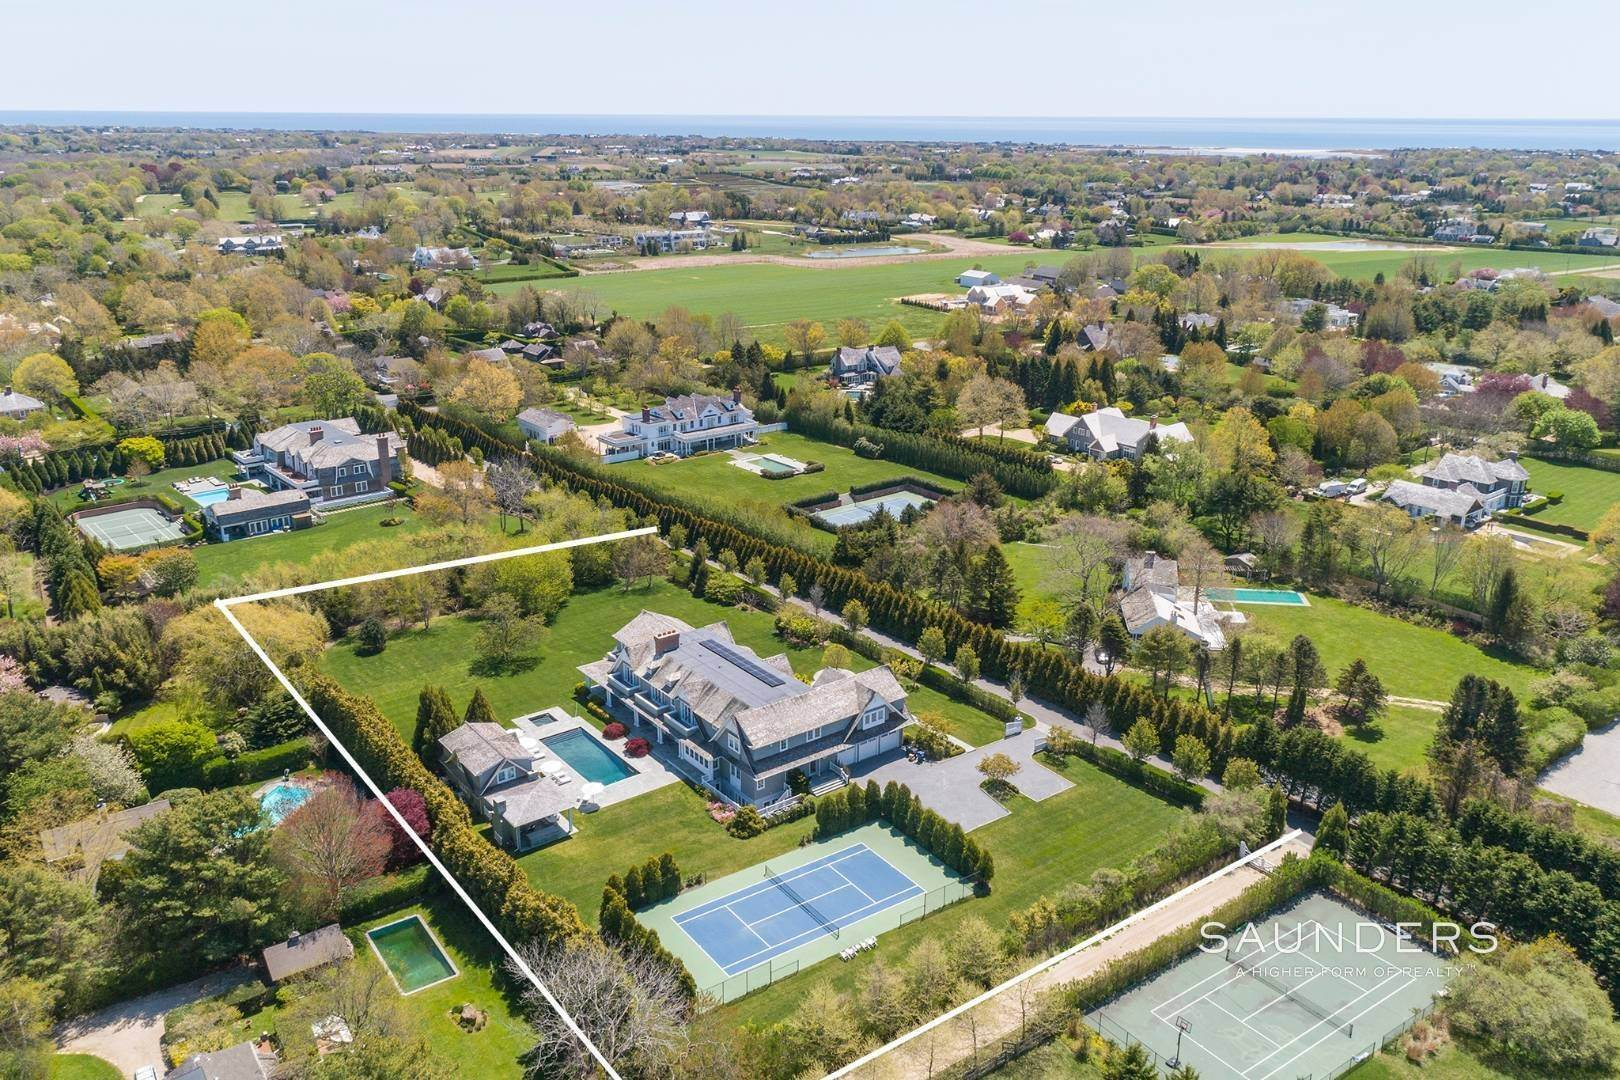 Single Family Homes for Sale at Bridgehampton South Estate 104 Halsey Lane, Bridgehampton, Southampton Town, NY 11932